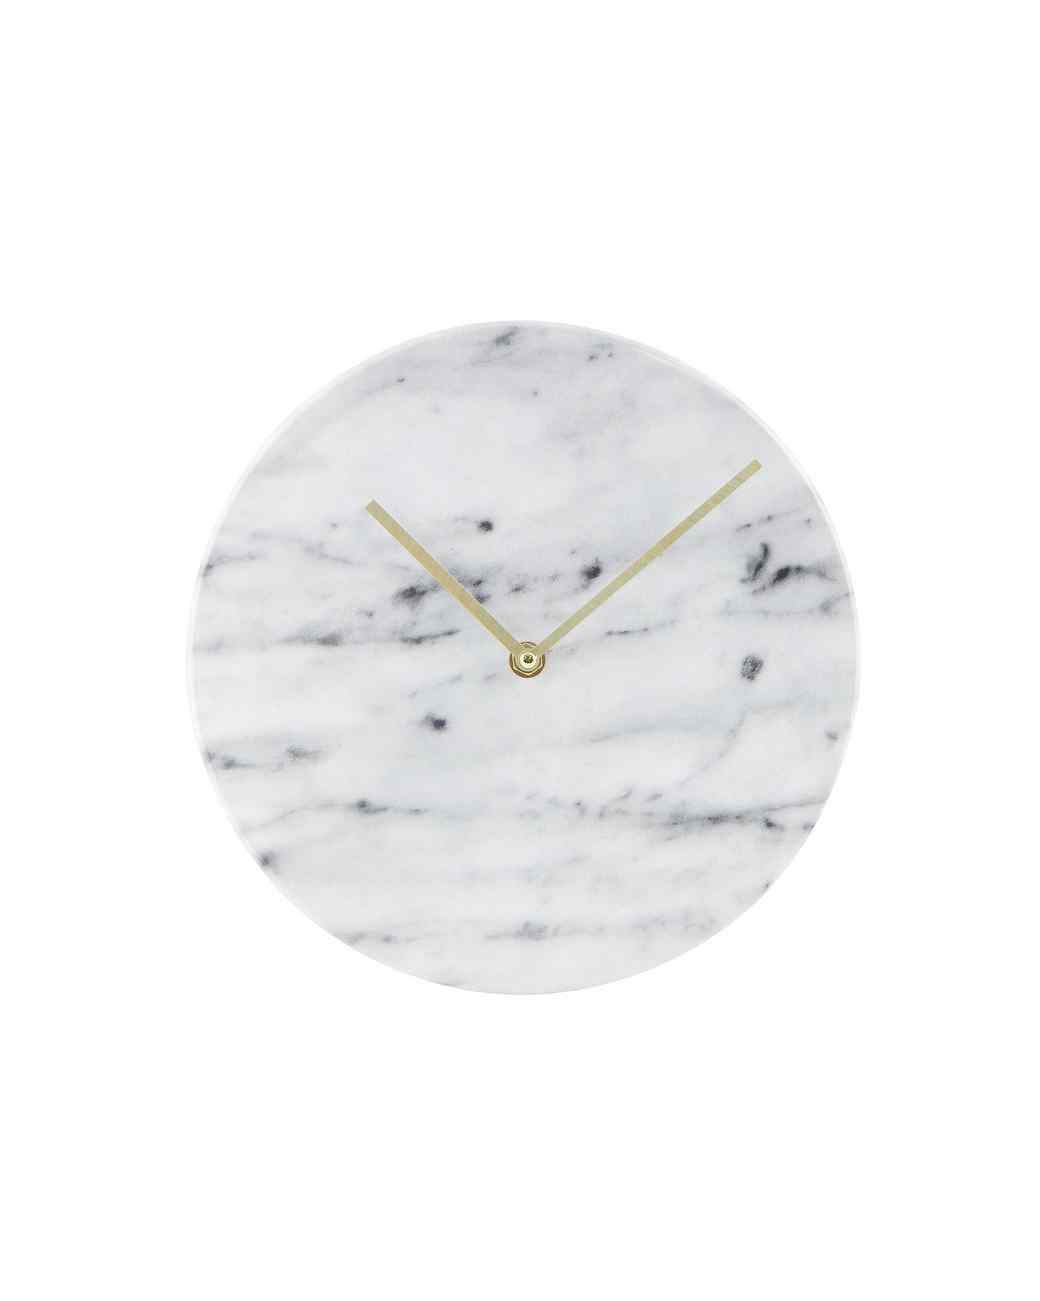 Marble clock from Target